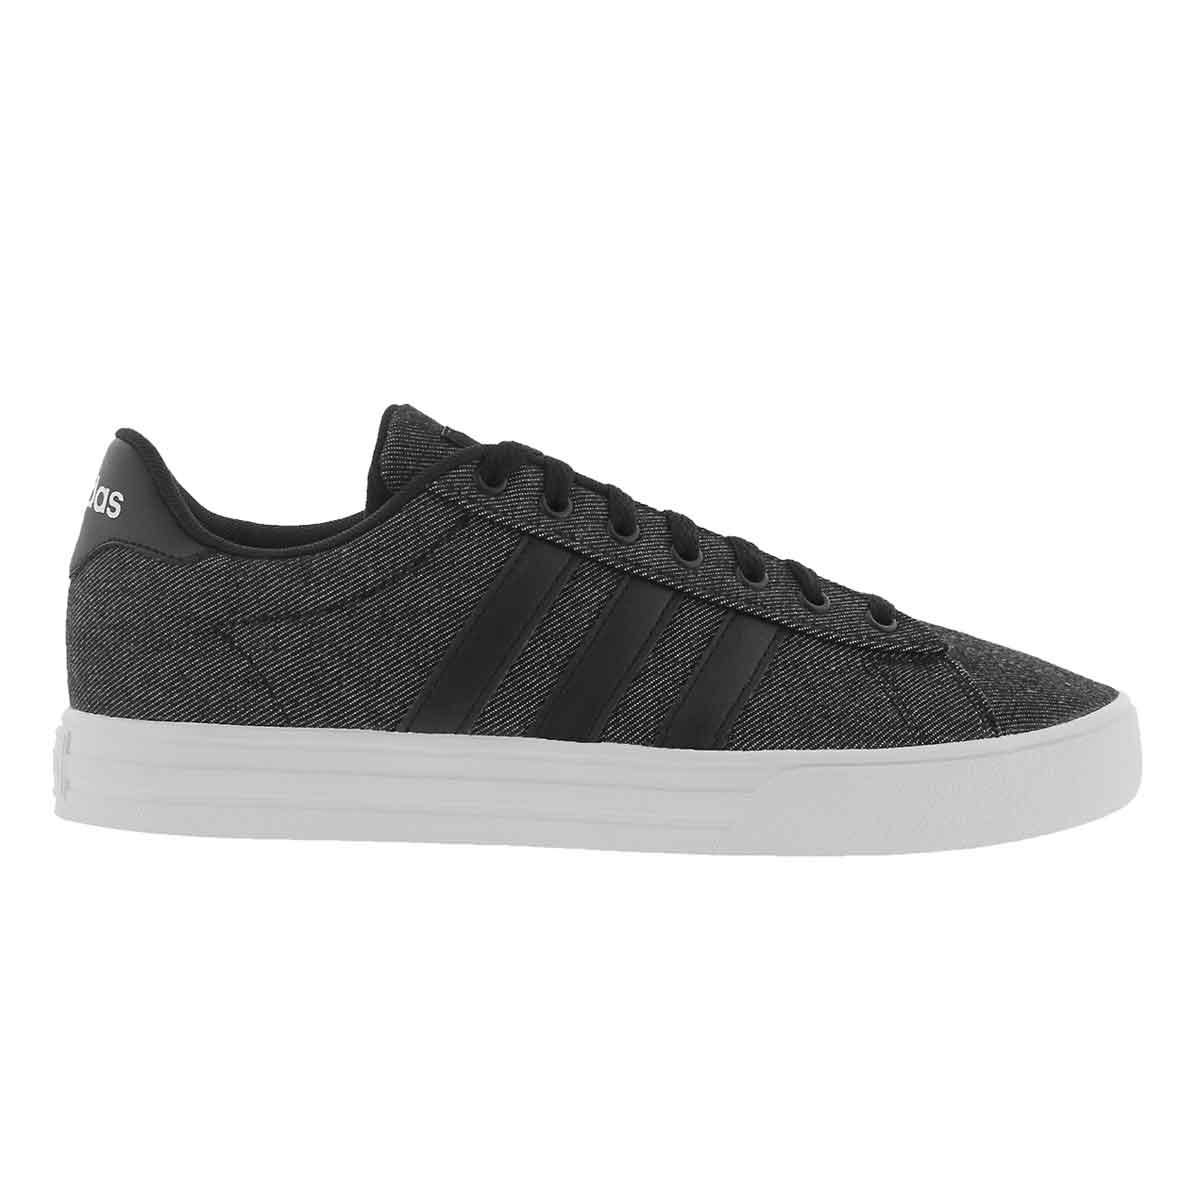 Men Men Men Adidas Daily 2.0 Denim Sneakers DB0284 Black